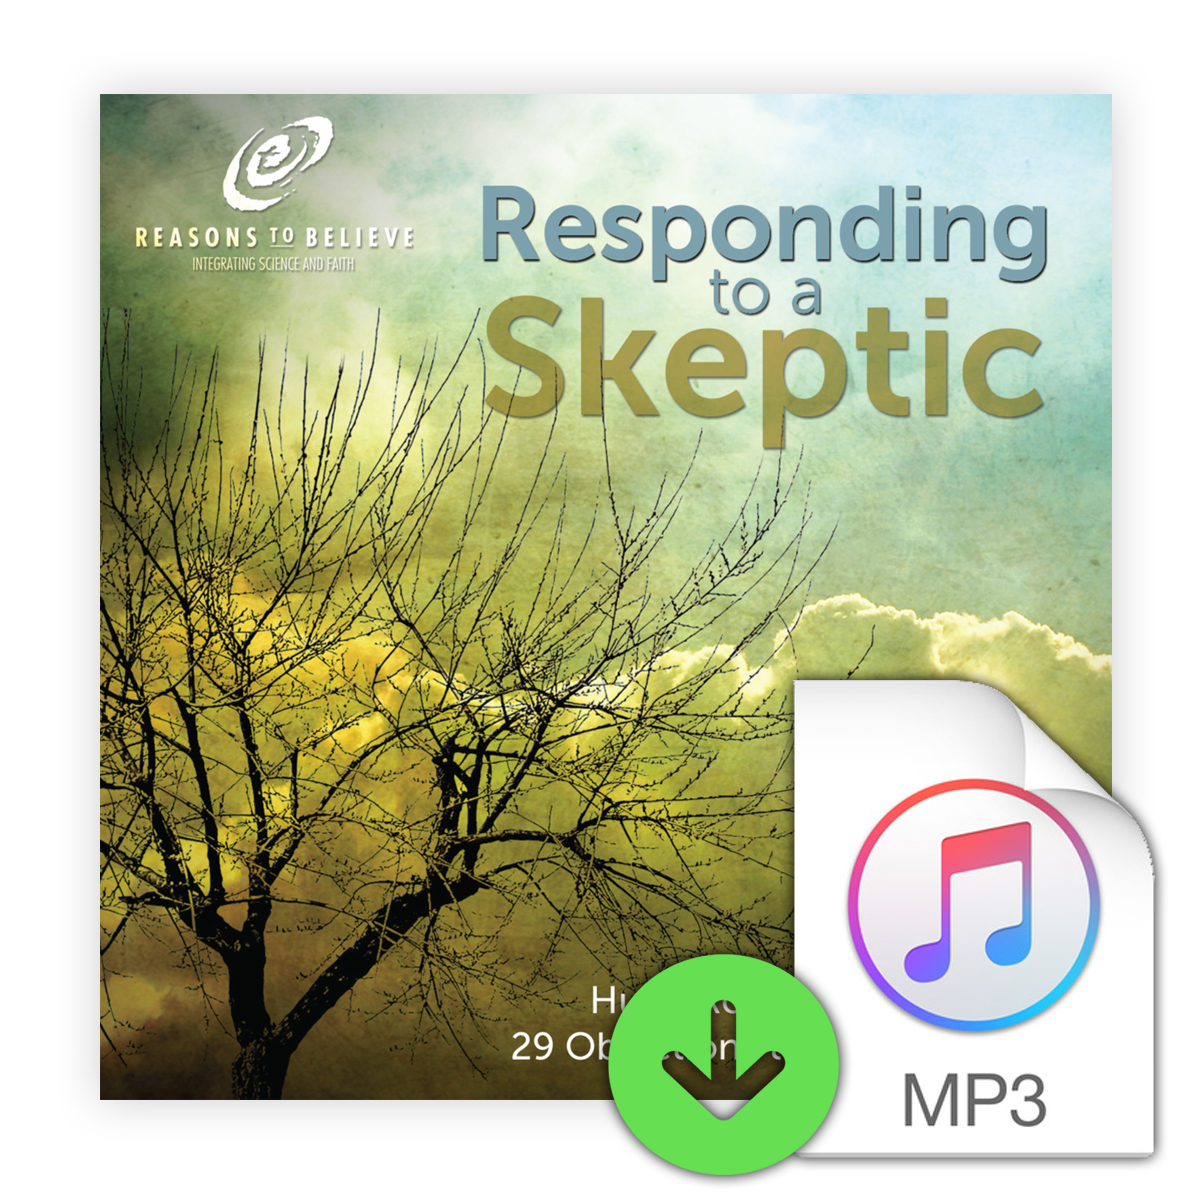 Responding to a Skeptic: Hugh Ross Answers 29 Objections to Christianity (Downloadable MP3) Image